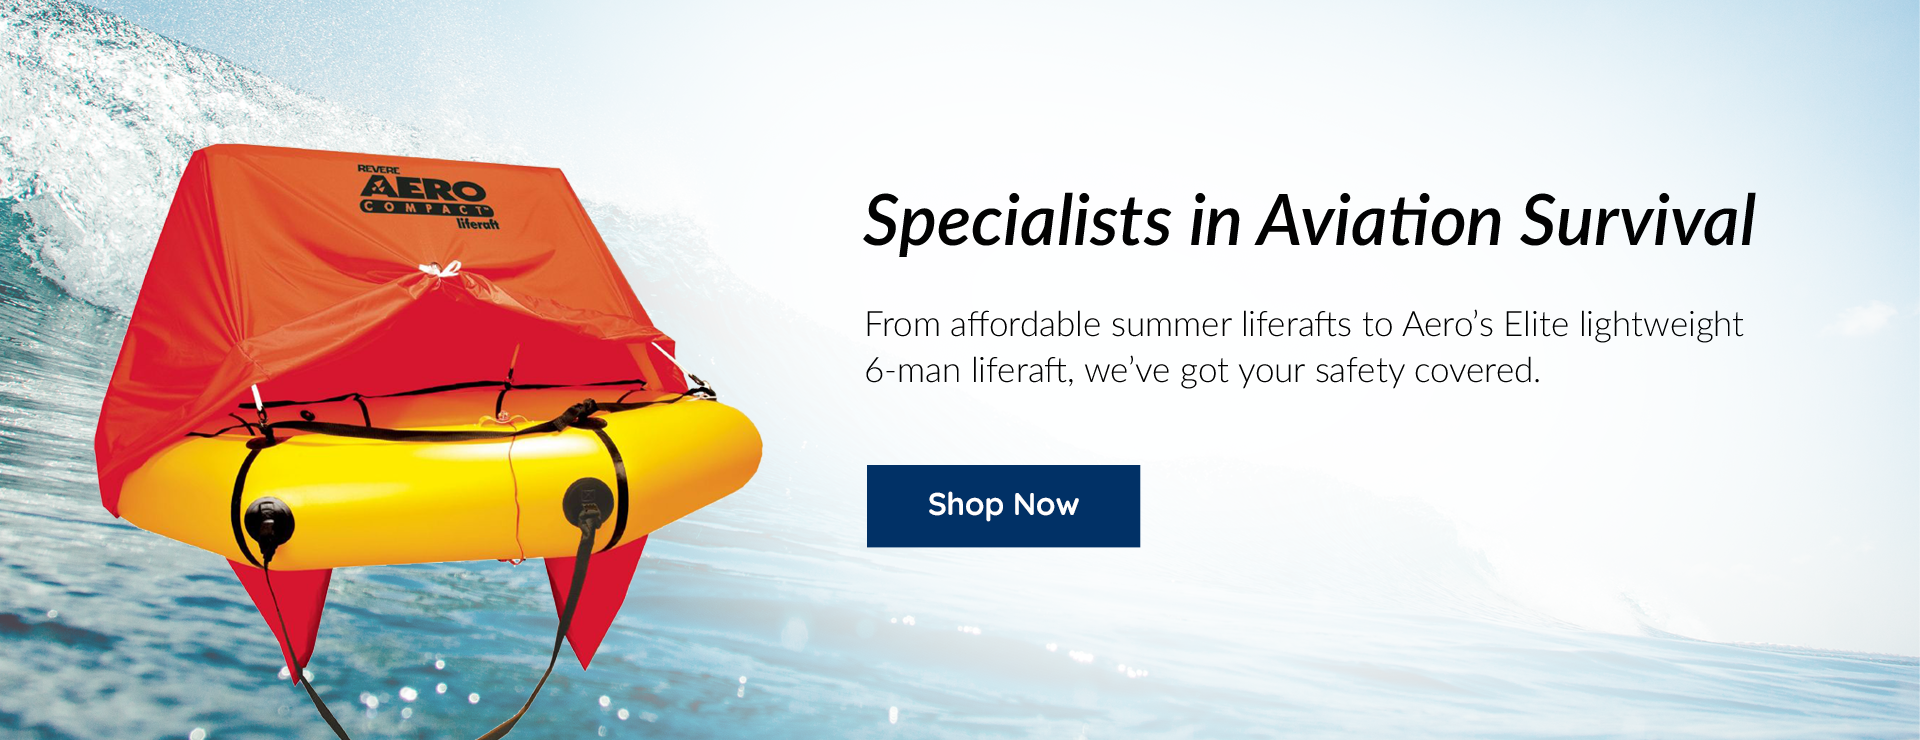 Specialists in aviation survival